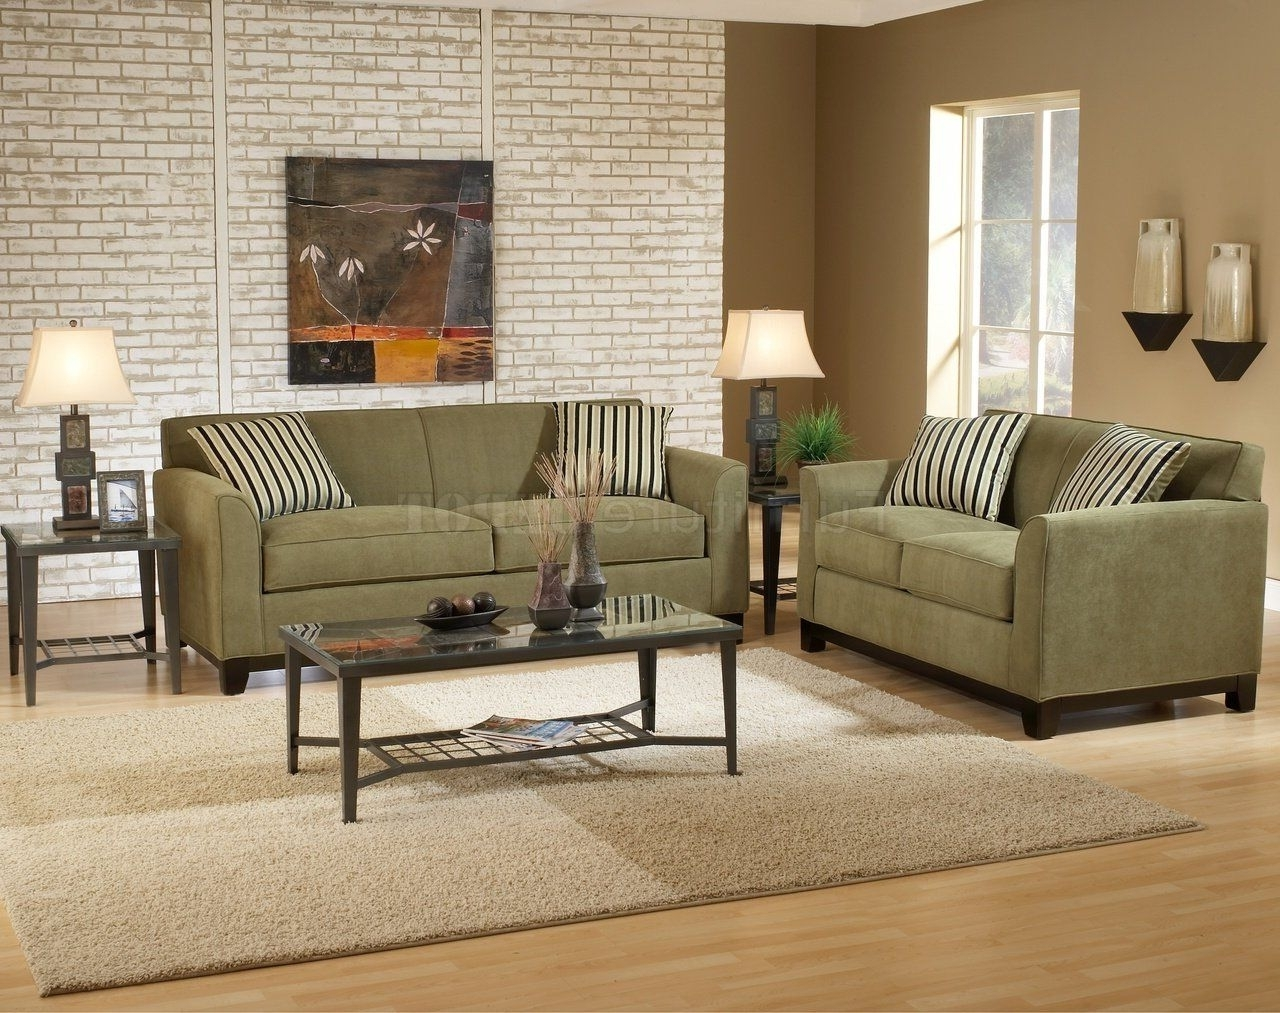 Sage Fabric Casual Modern Living (View 12 of 15)